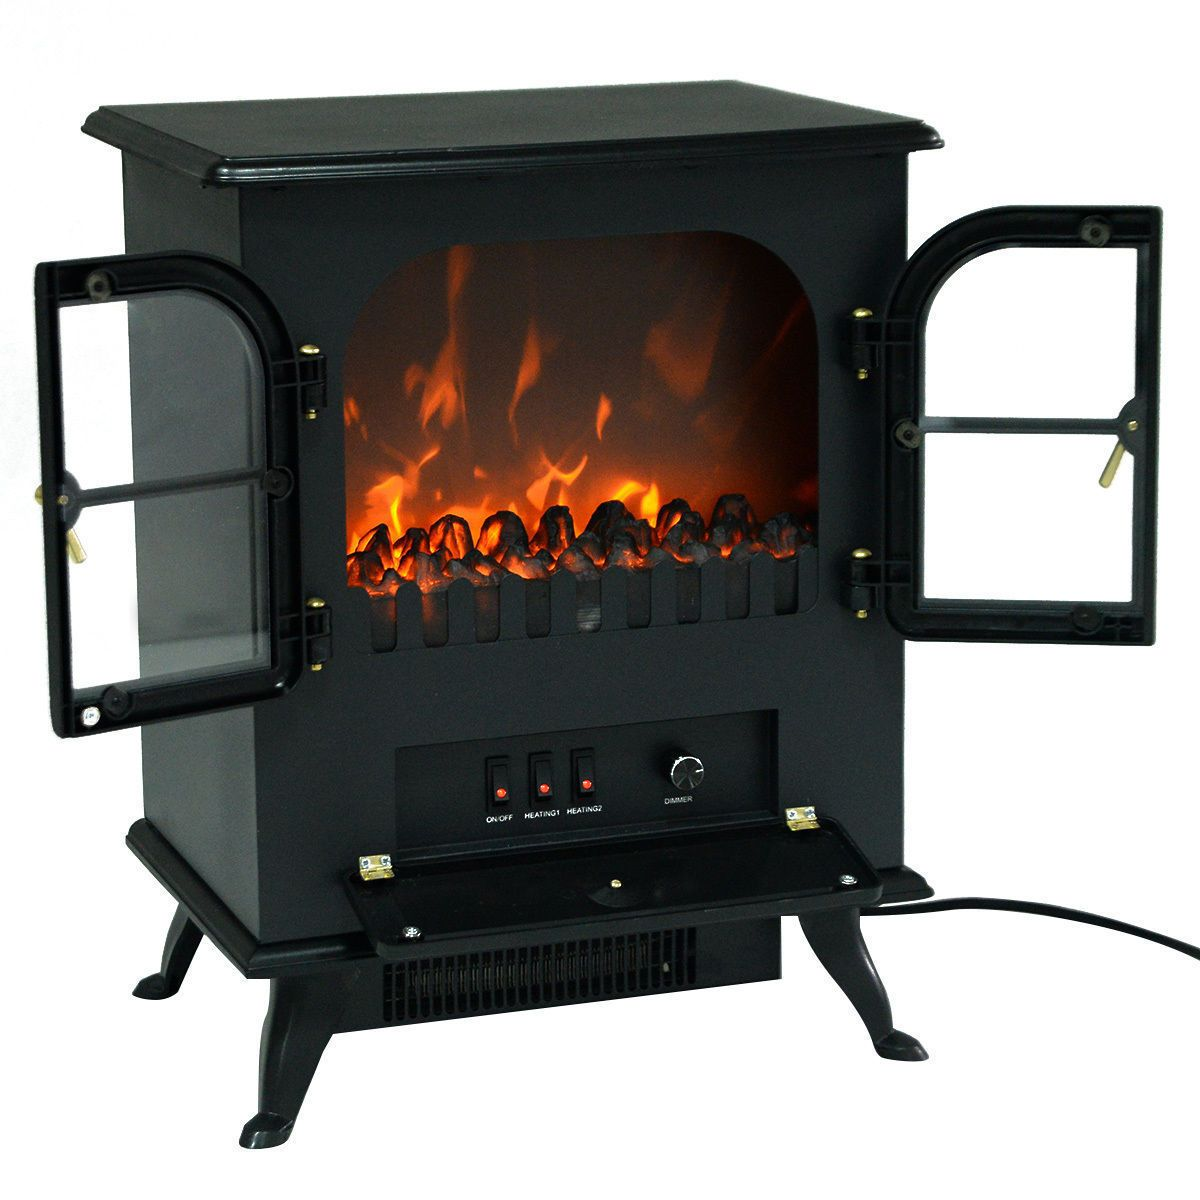 Free standing electric w fireplace heater fire flame stove wood